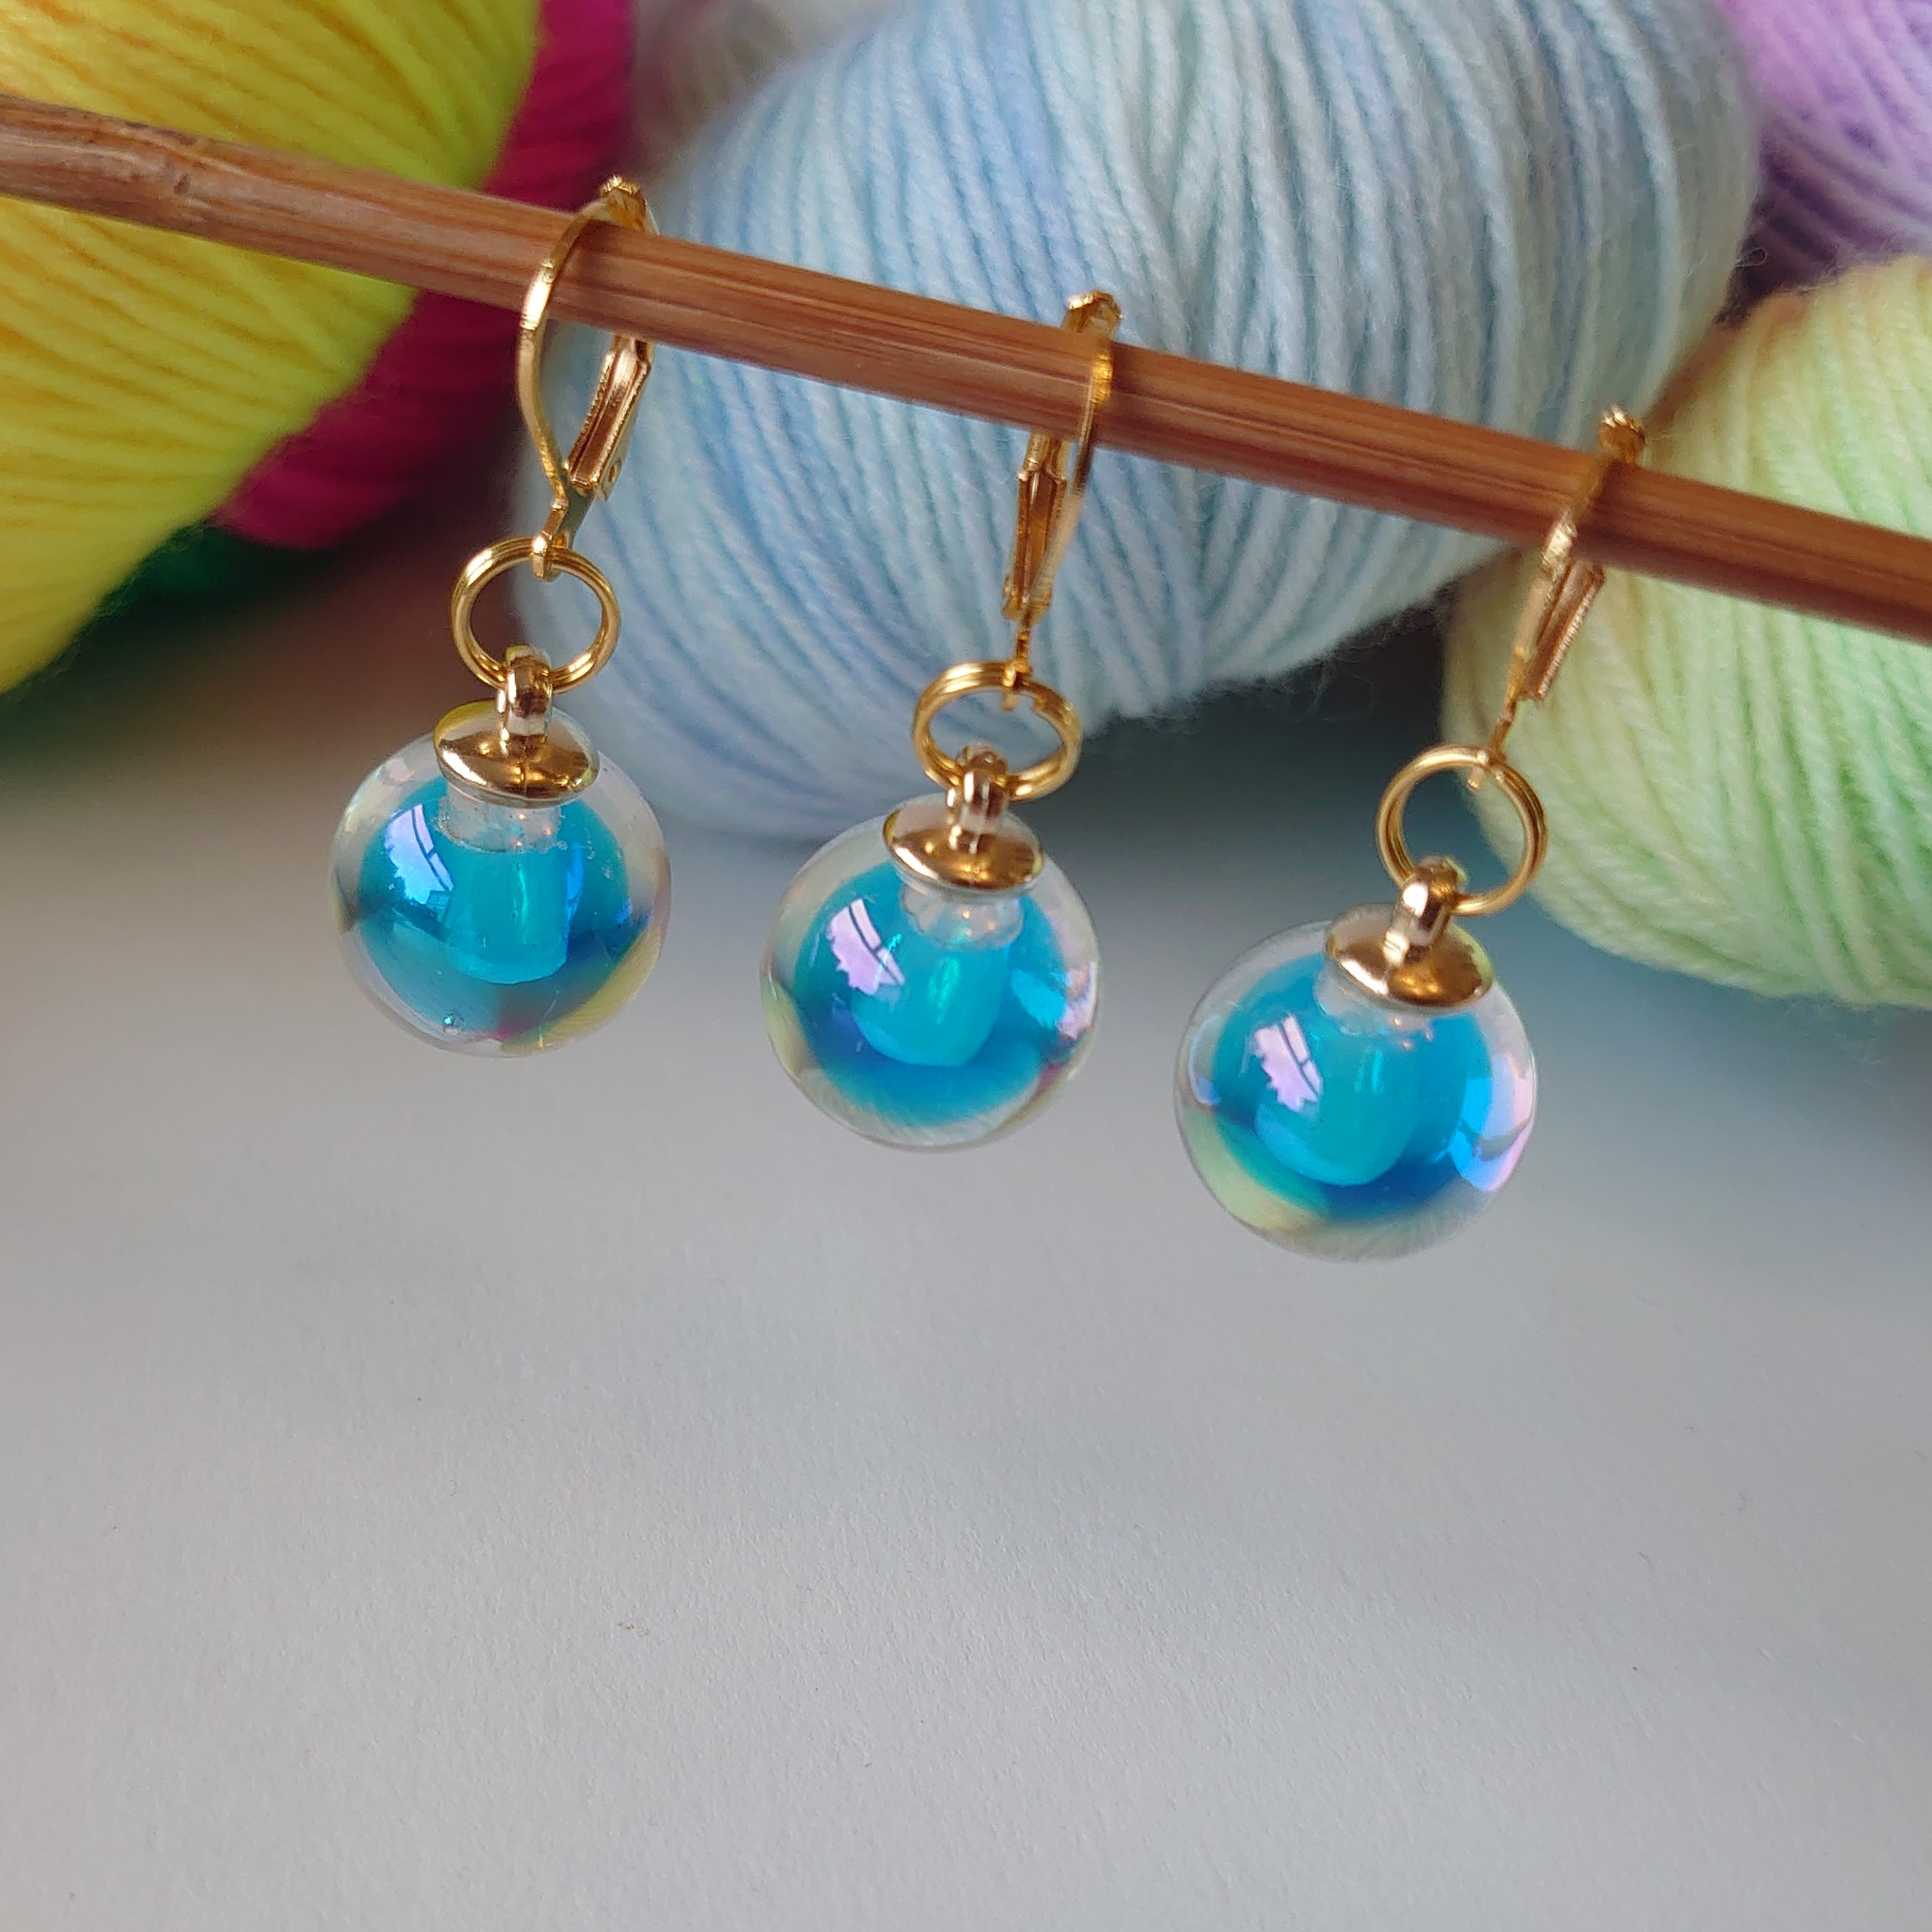 Blue Glass Stitch Markers